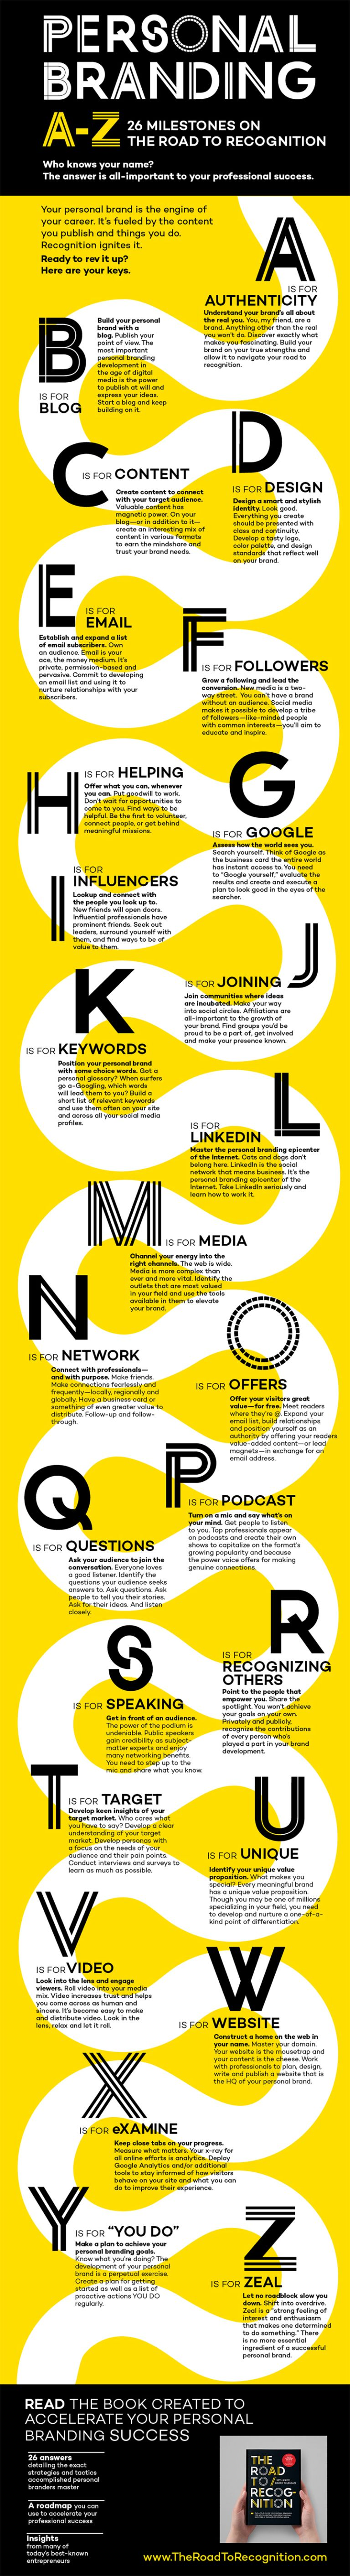 Infographic: Personal Branding Tips